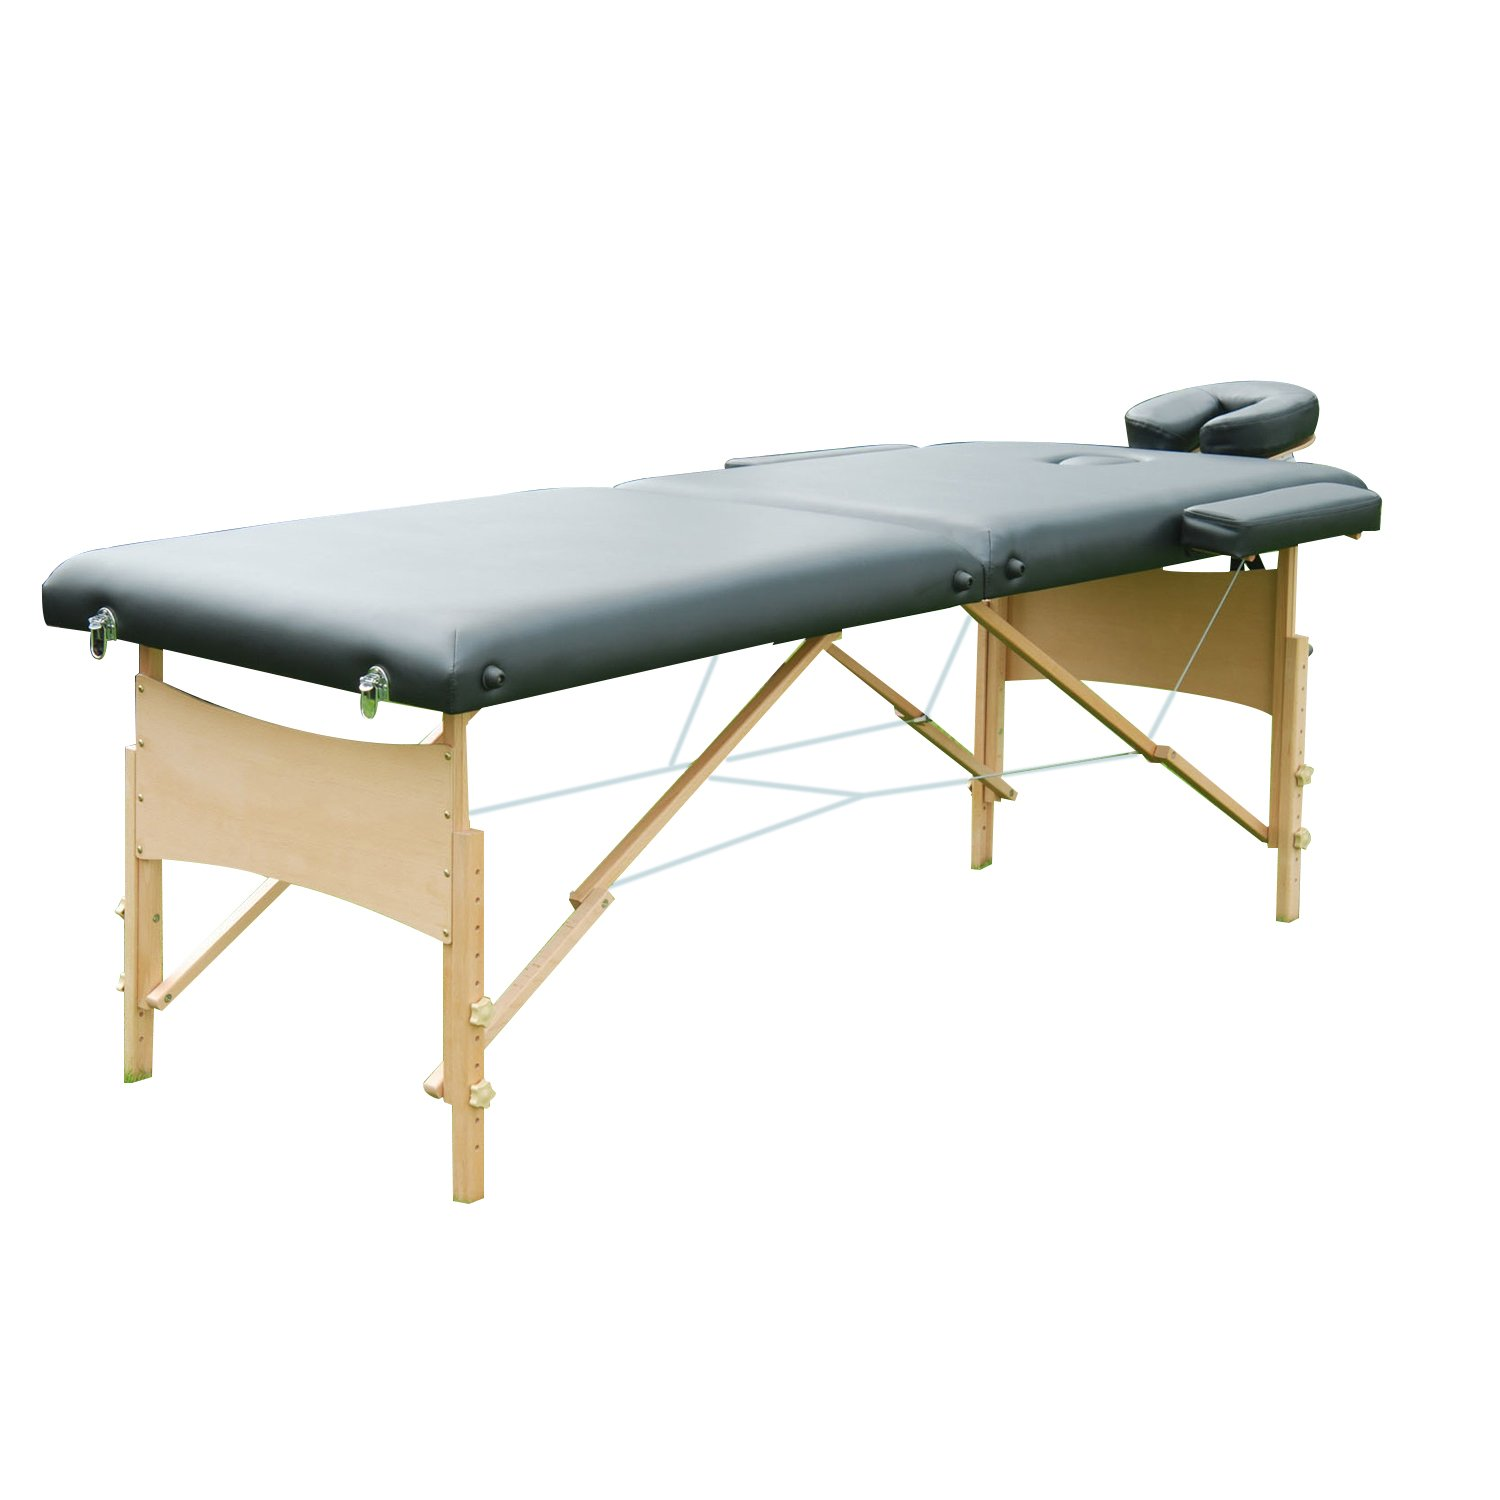 HomCom Portable Massage Table, 2 Fold Thick, Black Aosom Canada 5550-3162BK